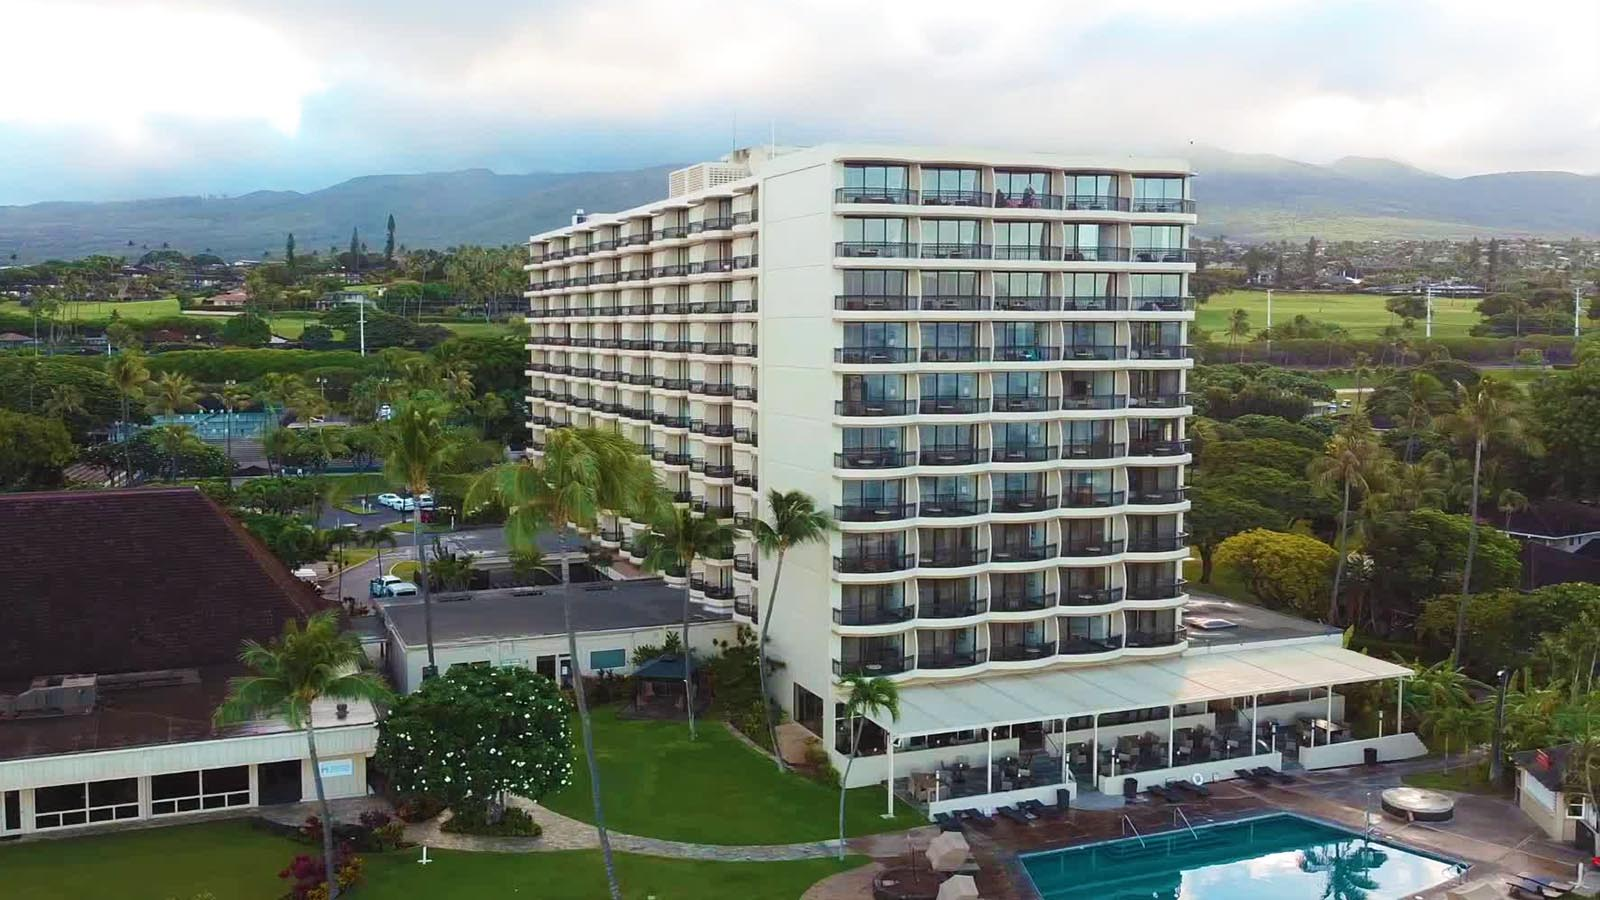 Who says beach front hotels are expensive? Enjoy a romantic yet affordable honeymoon stay at the Royal Lahaina Resort in Maui.